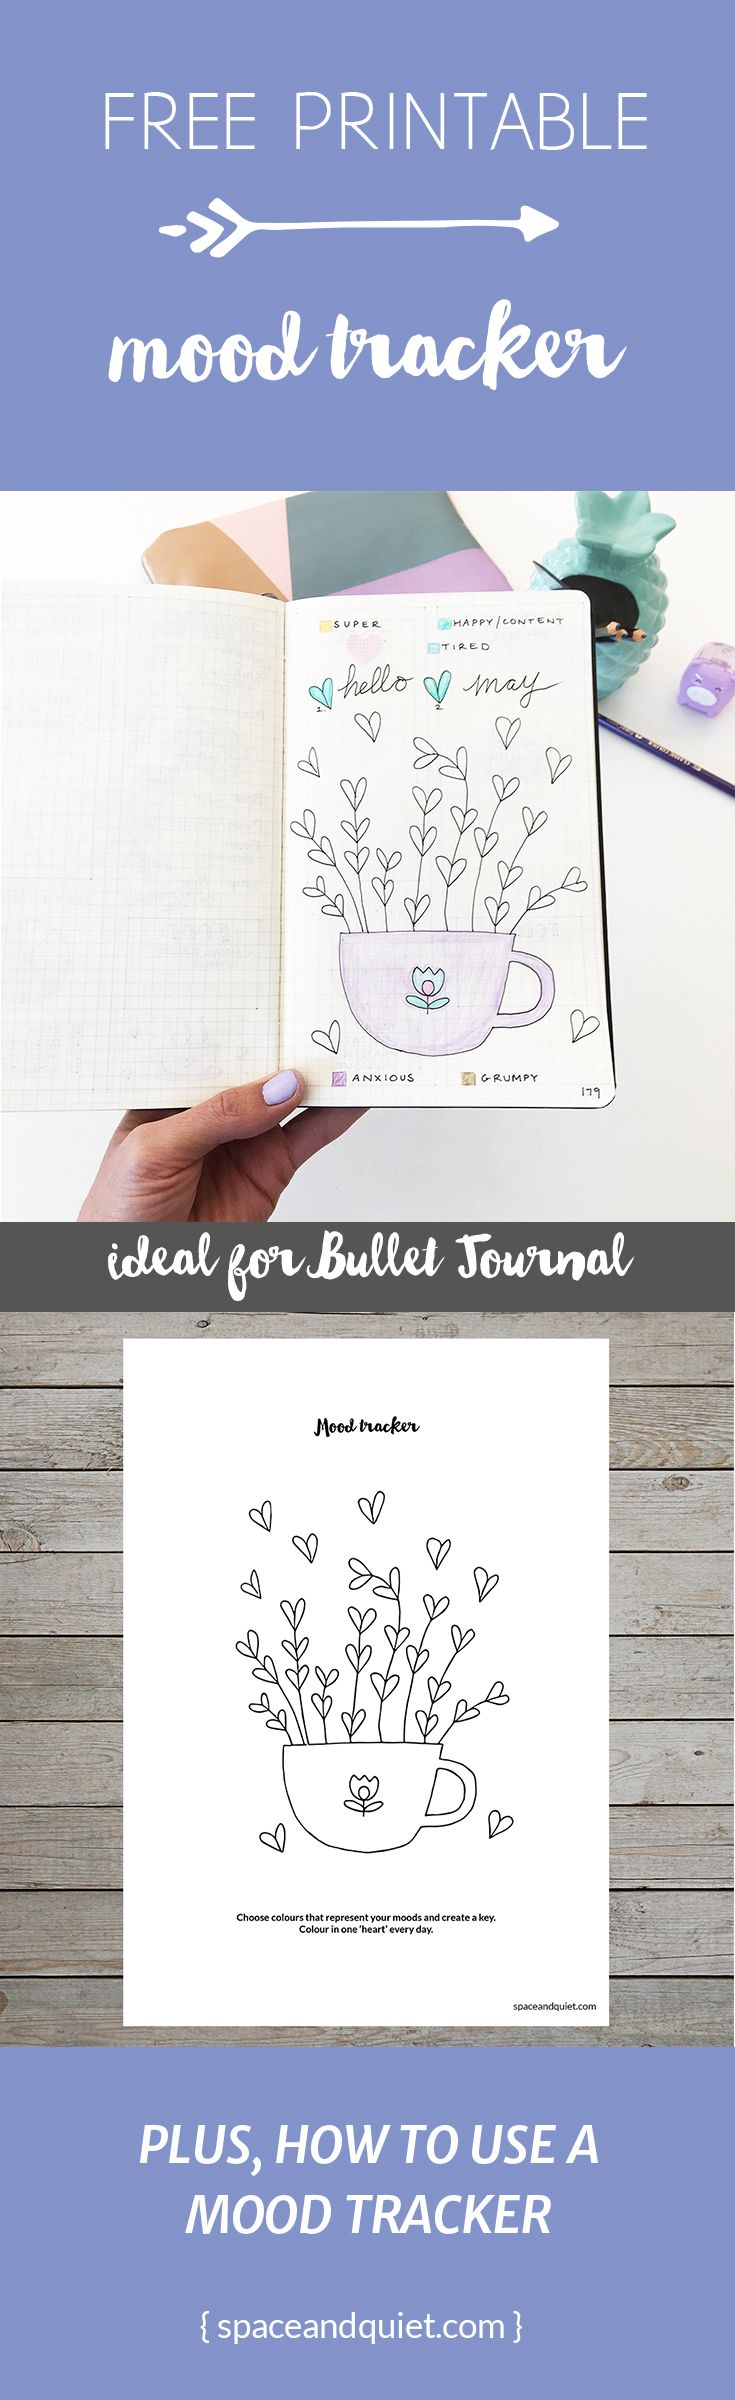 Printable Mood Tracker for Bullet Journal - Free Download